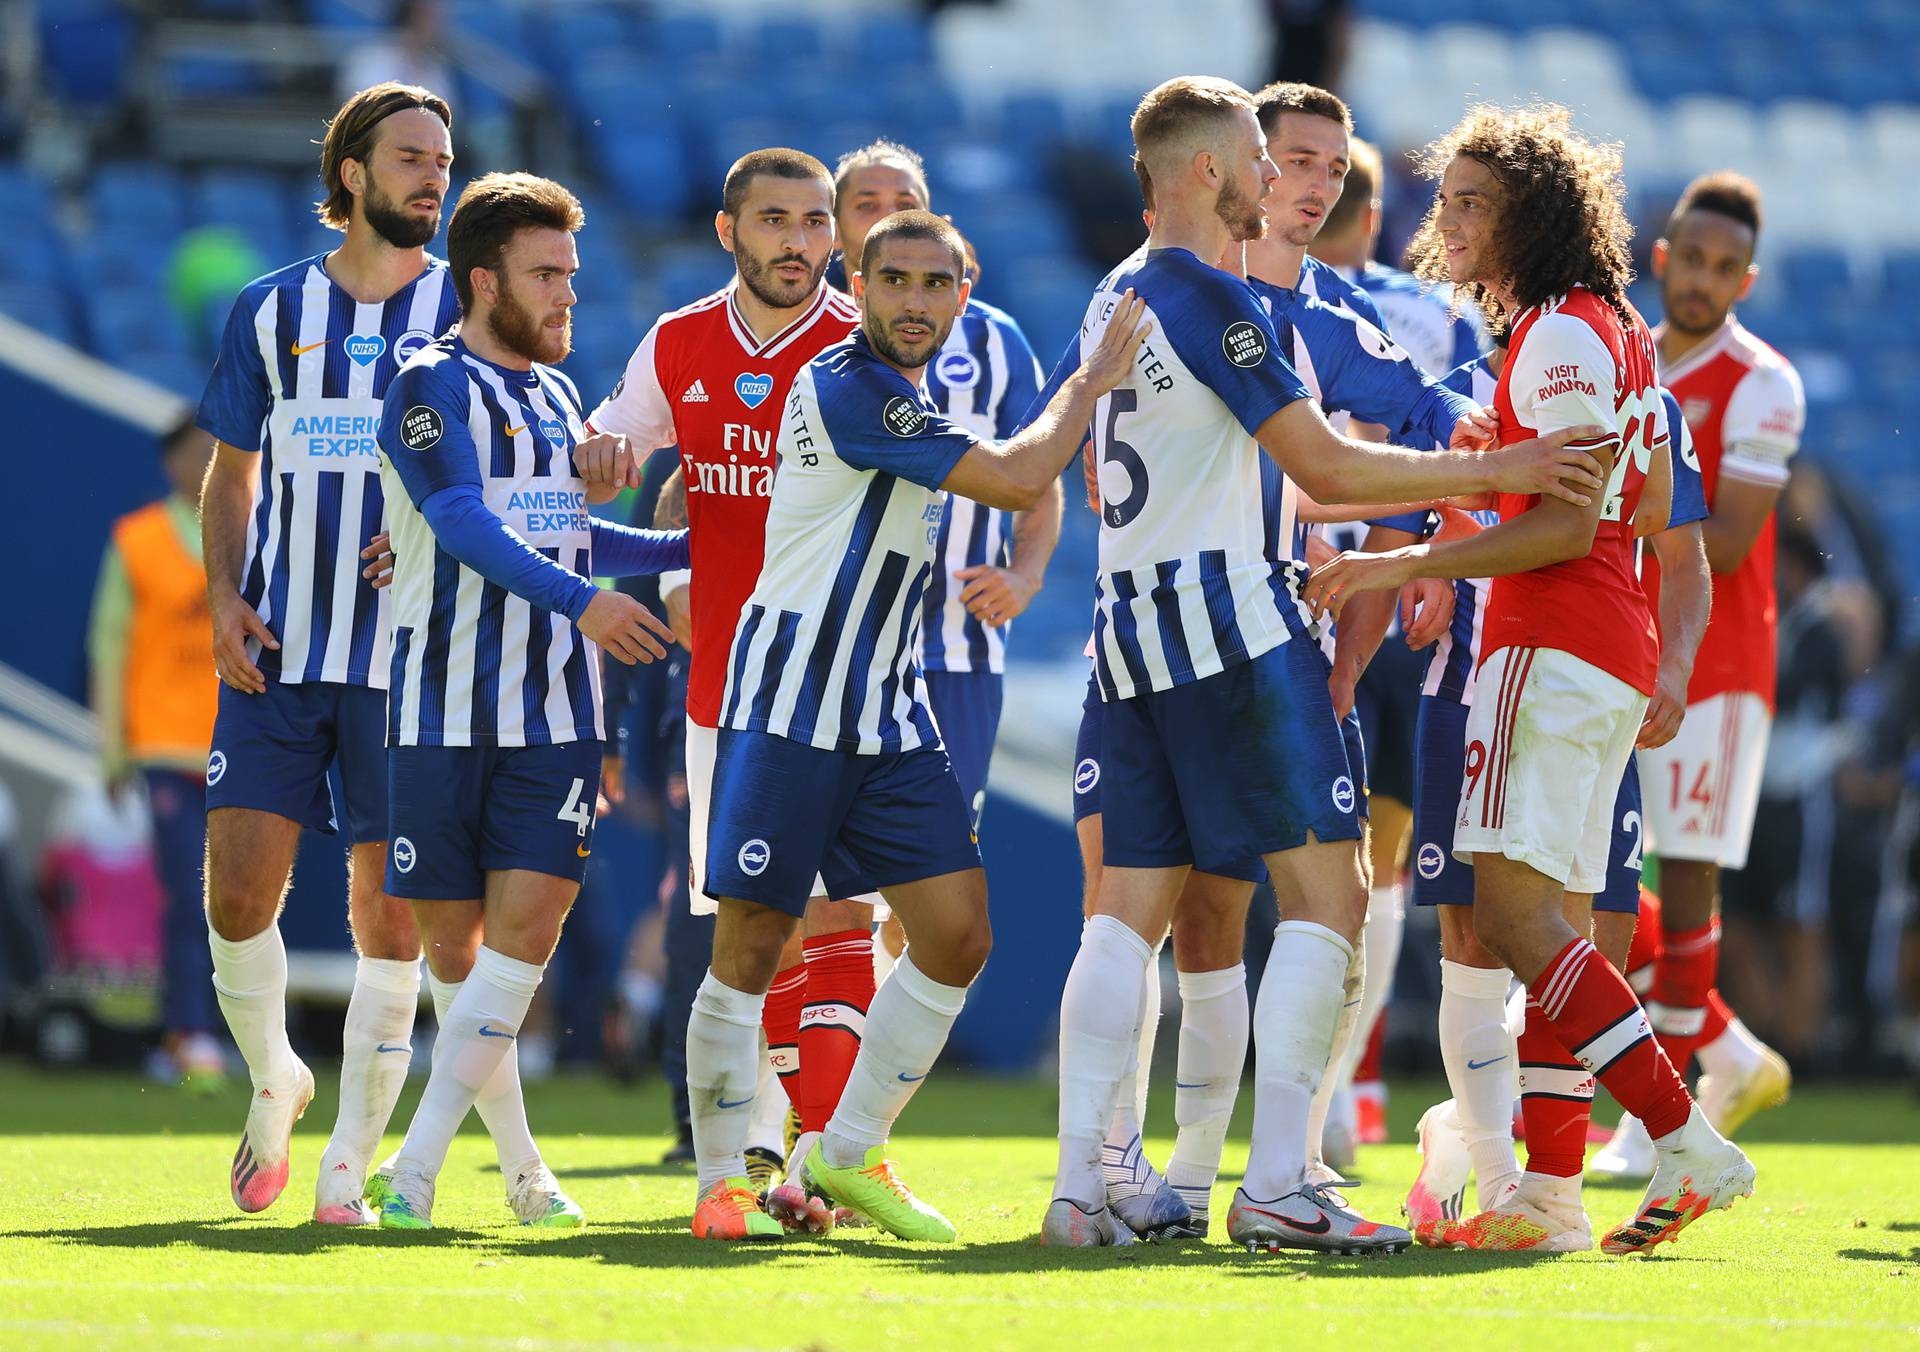 Premier League - Brighton & Hove Albion v Arsenal